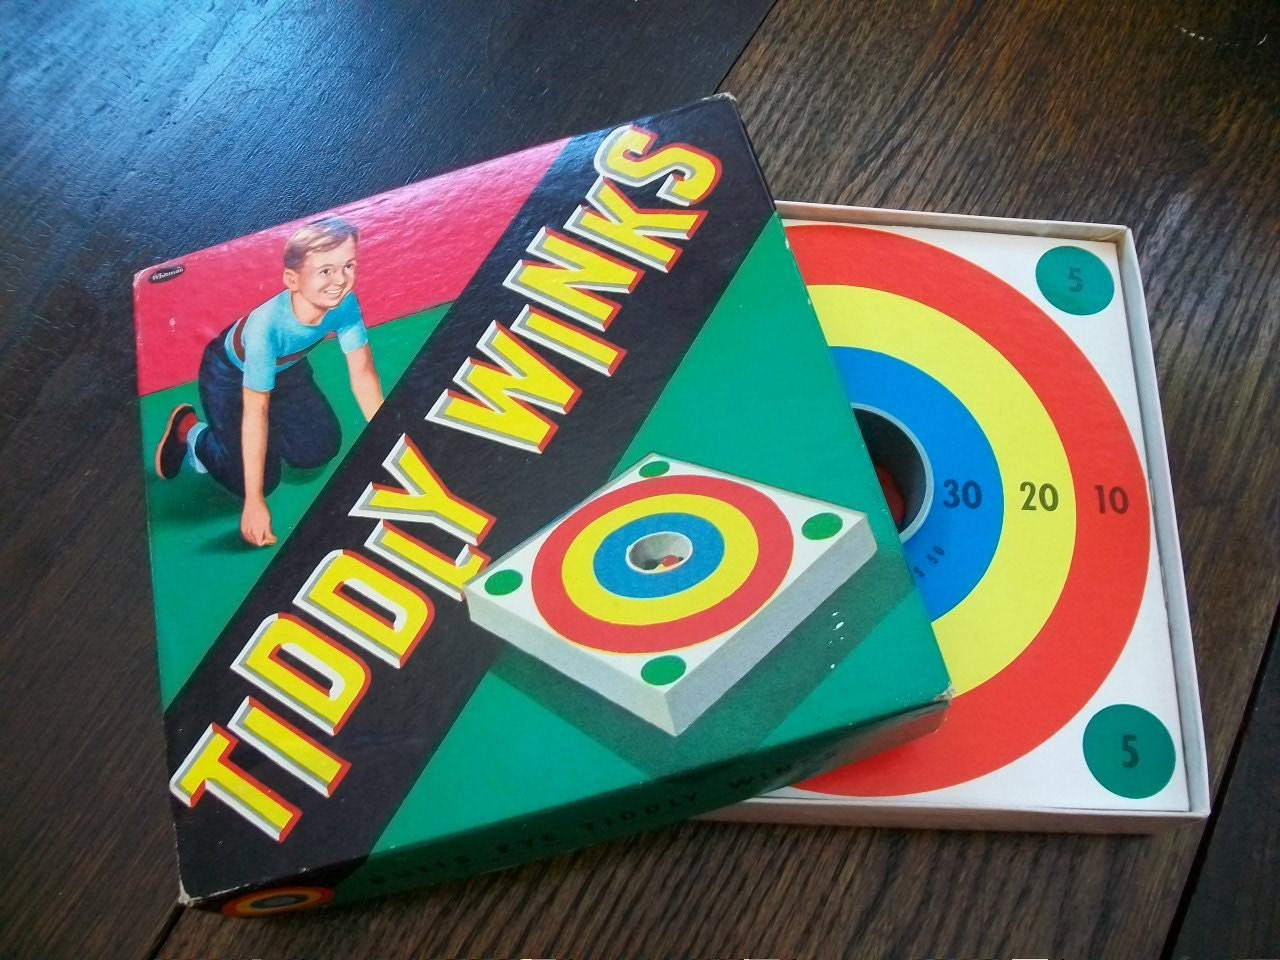 Toys For Games : S tiddly winks game toy